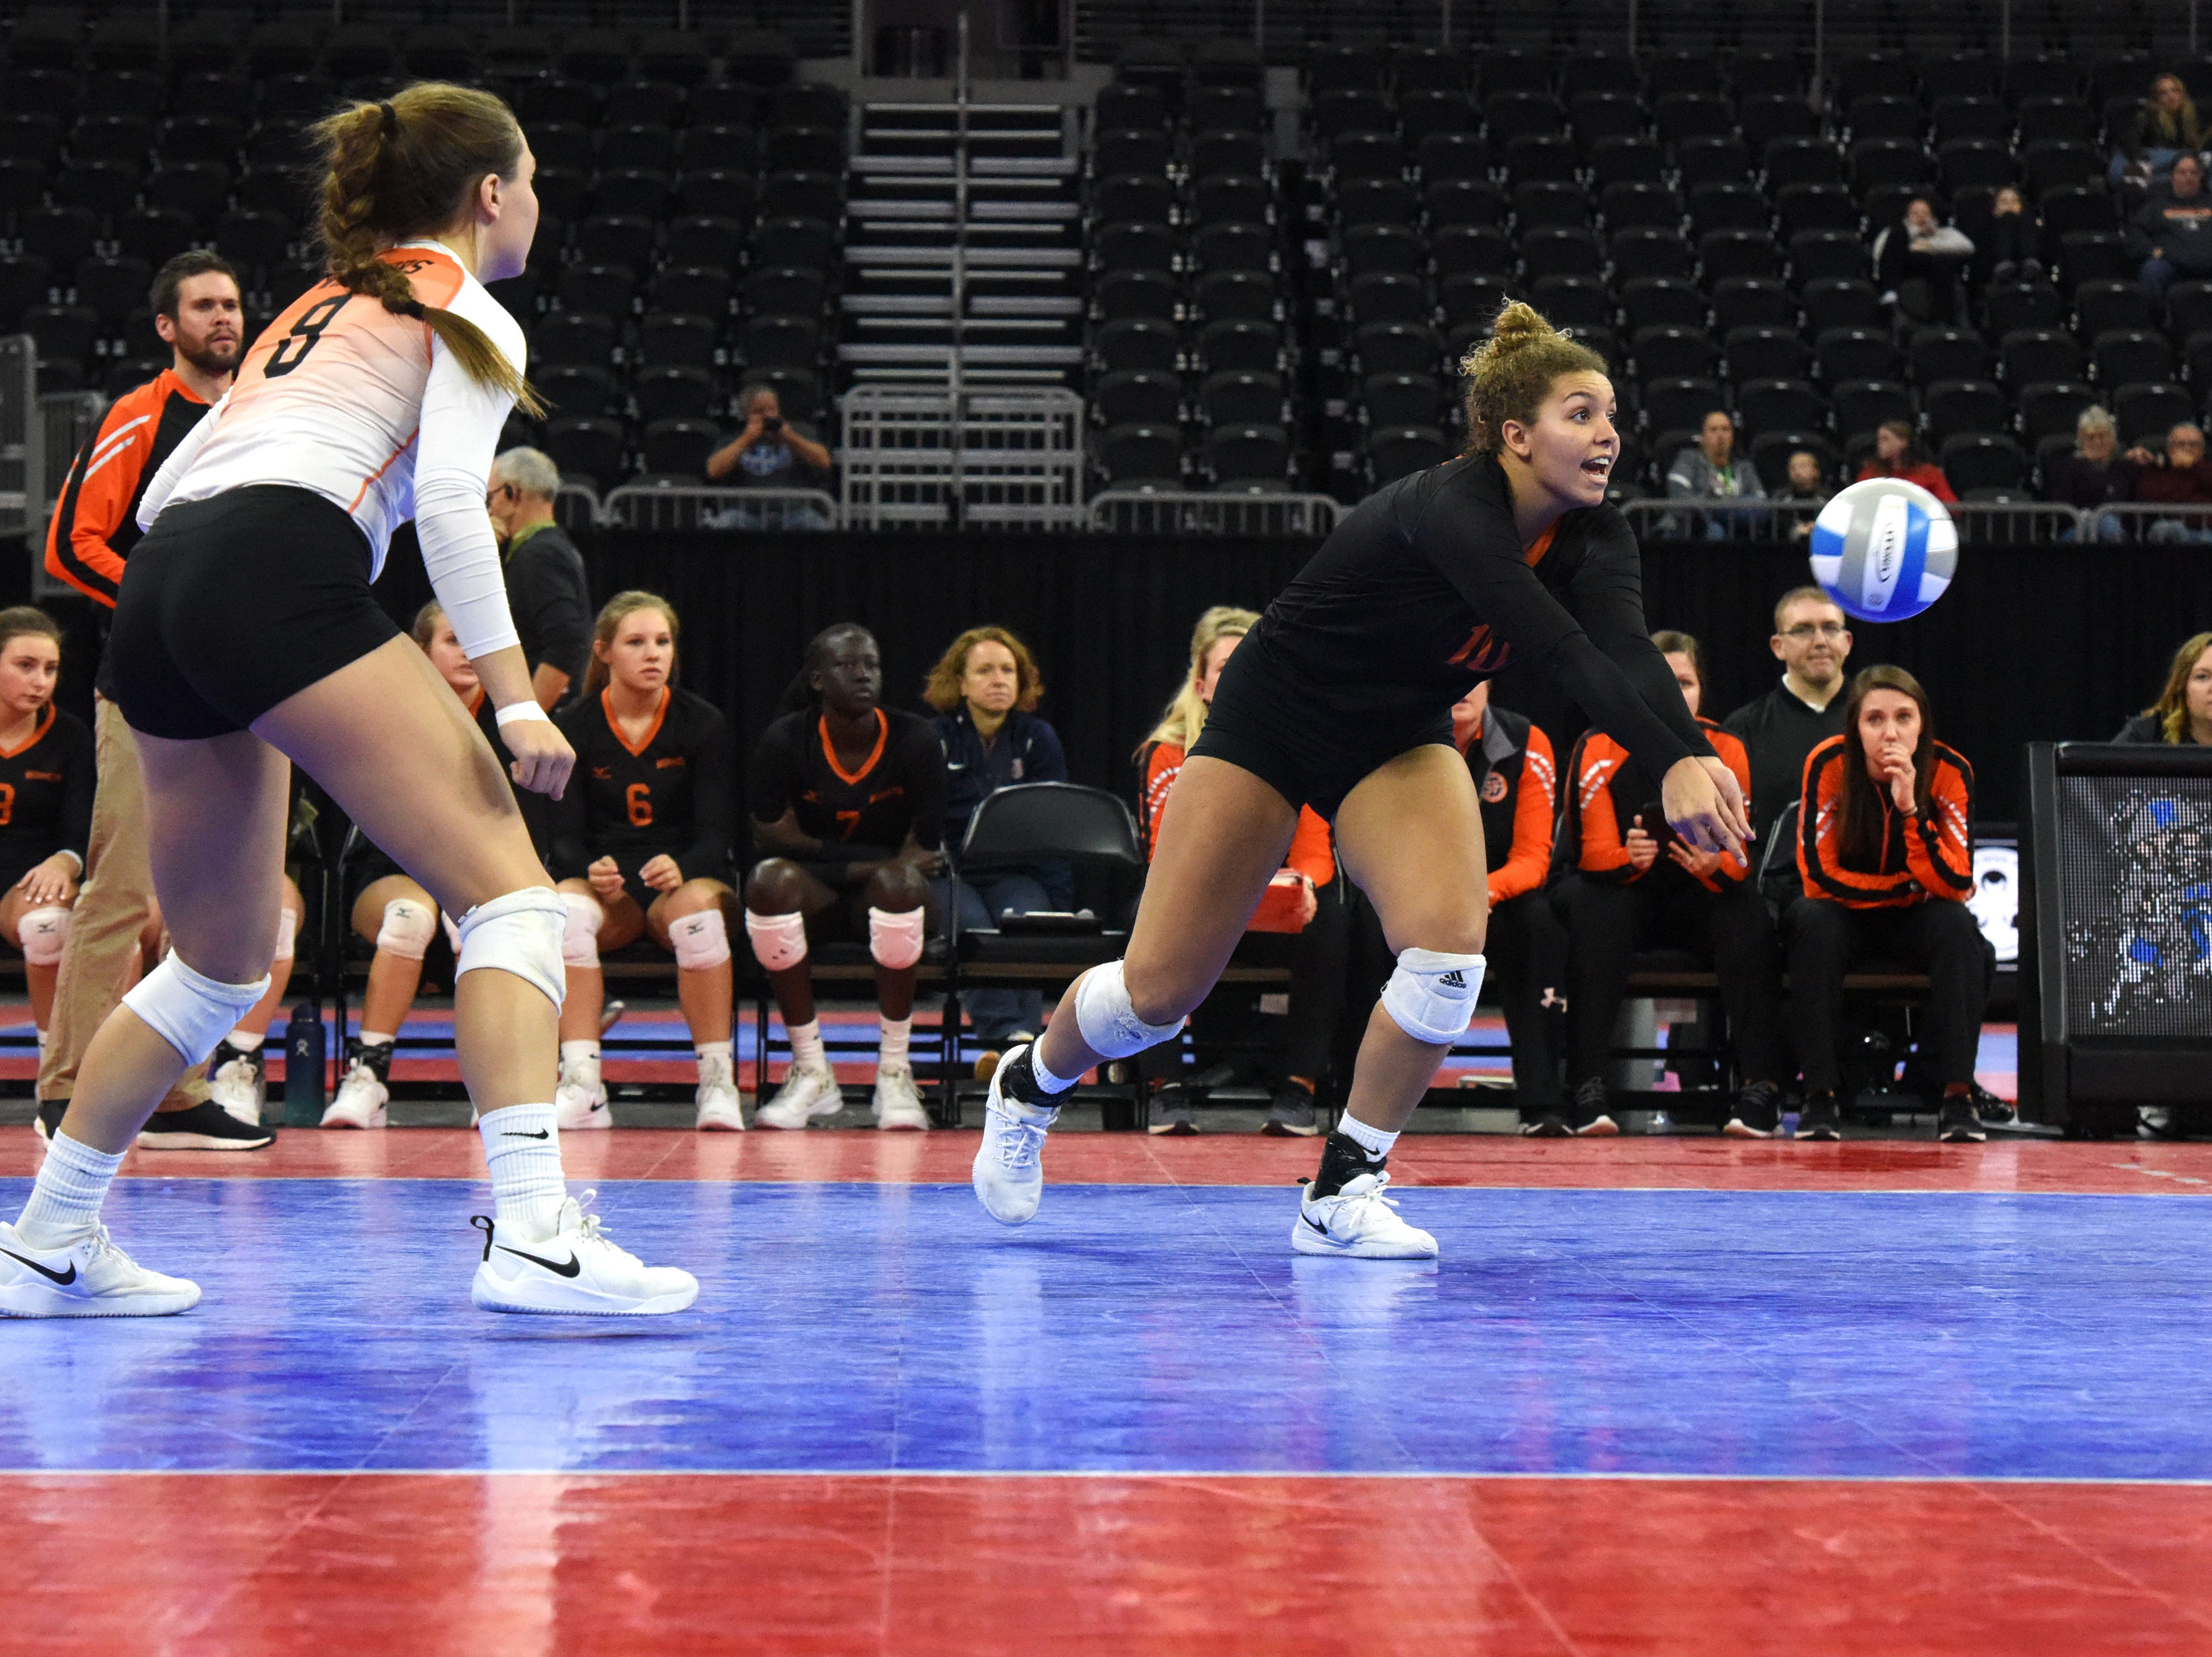 Washington's Samiya Jami (10) bumps the ball during a match against Rapid City, Saturday, Nov. 17, 2018, at the Denny Sanford Premier Center in Sioux Falls, S.D.